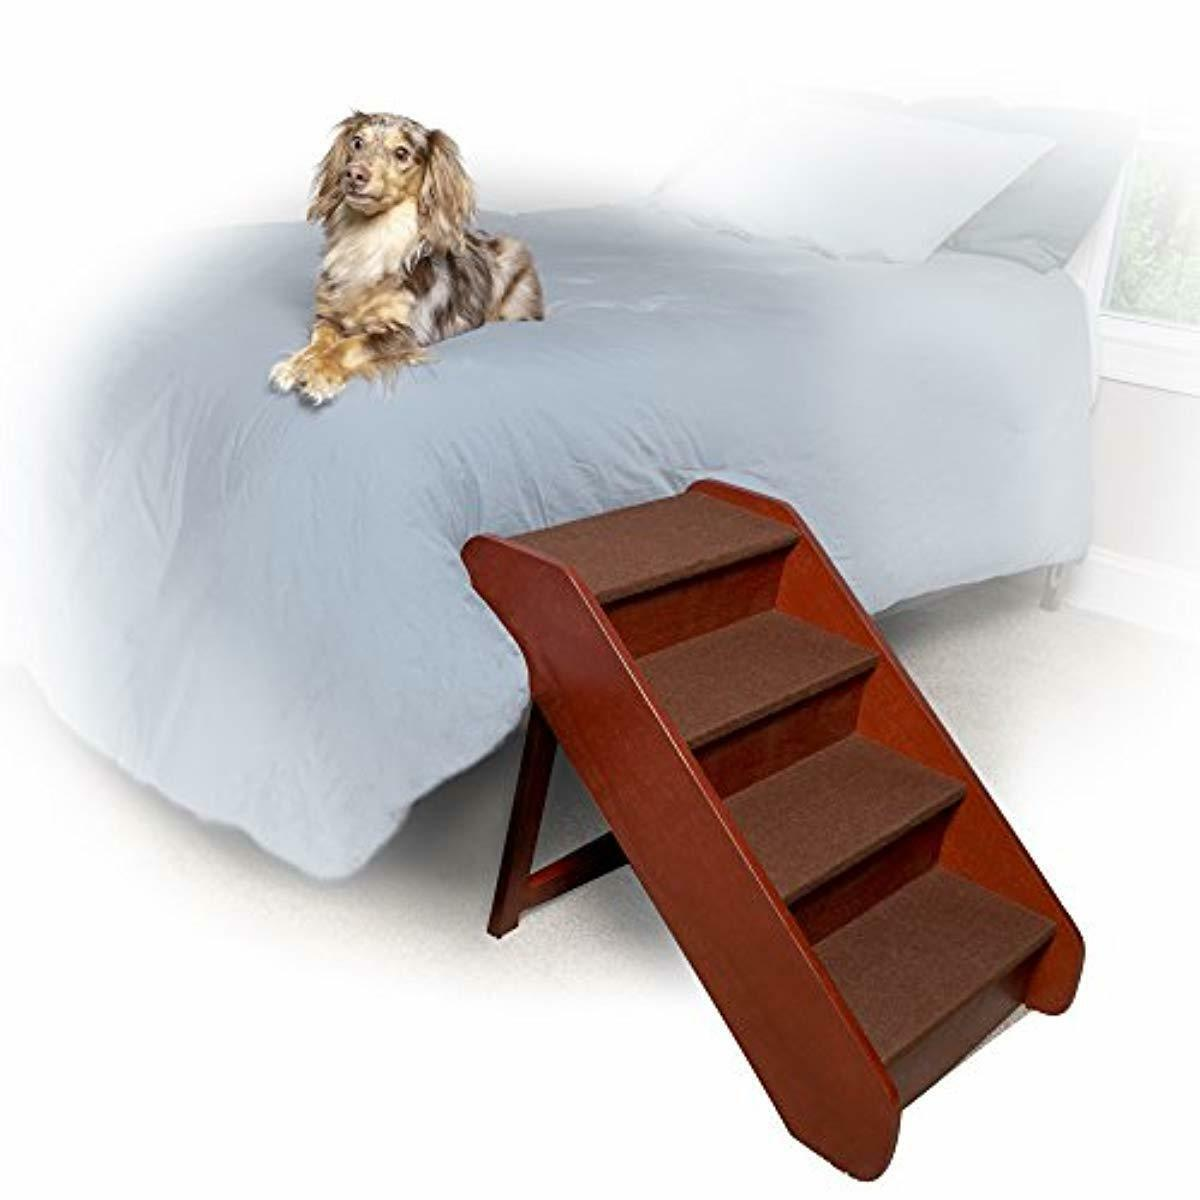 PetSafe Solvit PupSTEP Wood Pet Stairs, Foldable Steps for Dogs and Cats, Best f